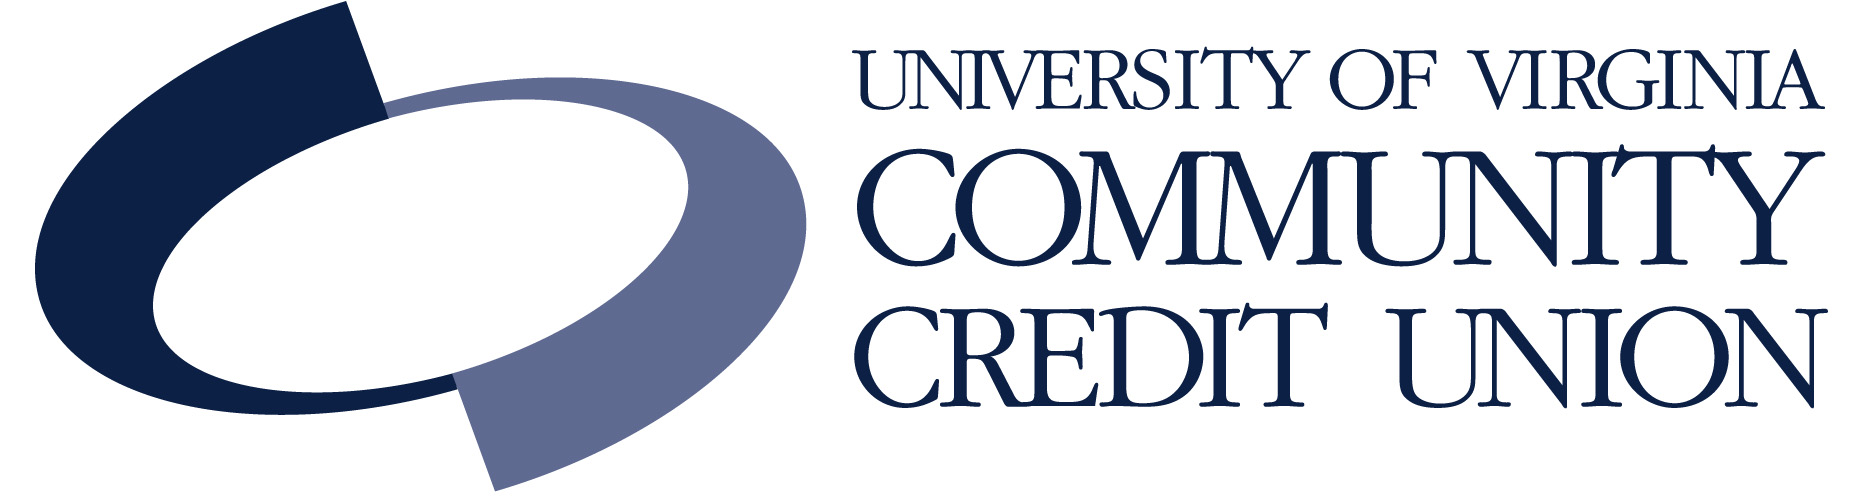 UVA Credit Union logo